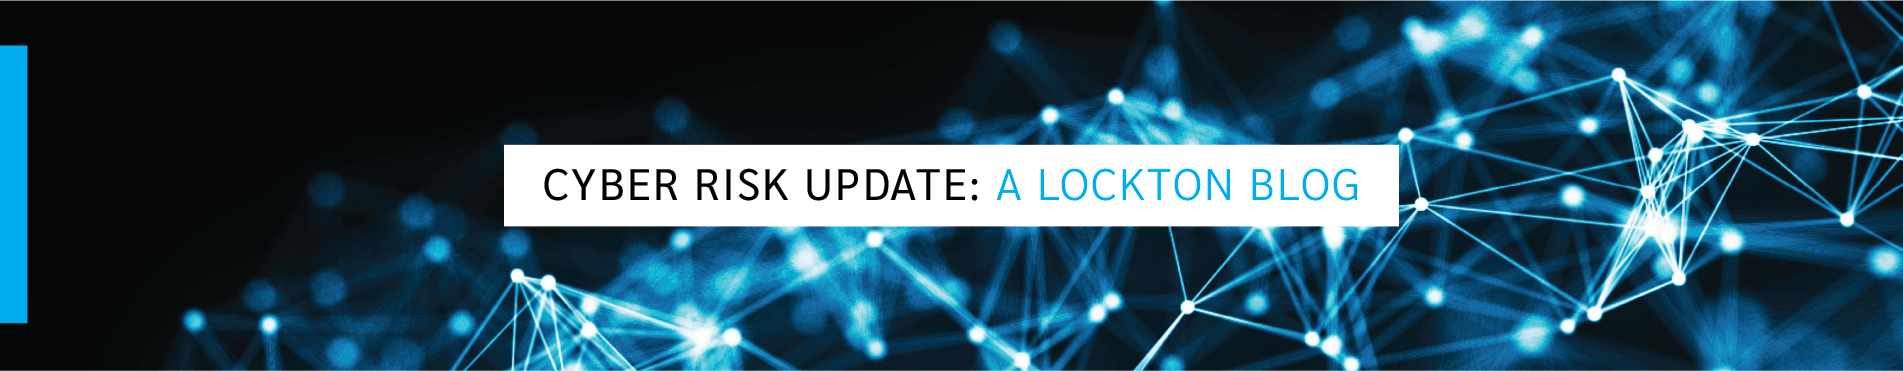 Cyber Risk Update A Lockton Blog